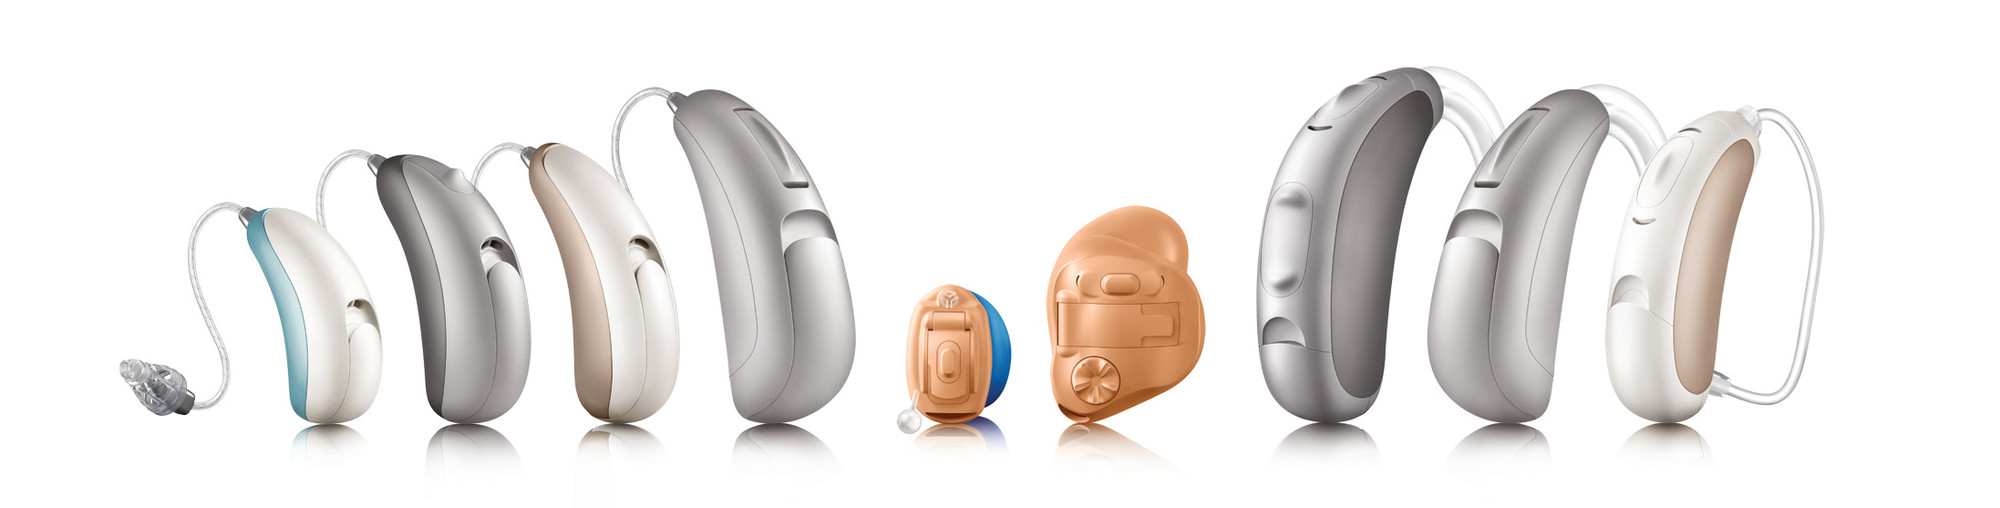 Examples of 9 different hearing aids